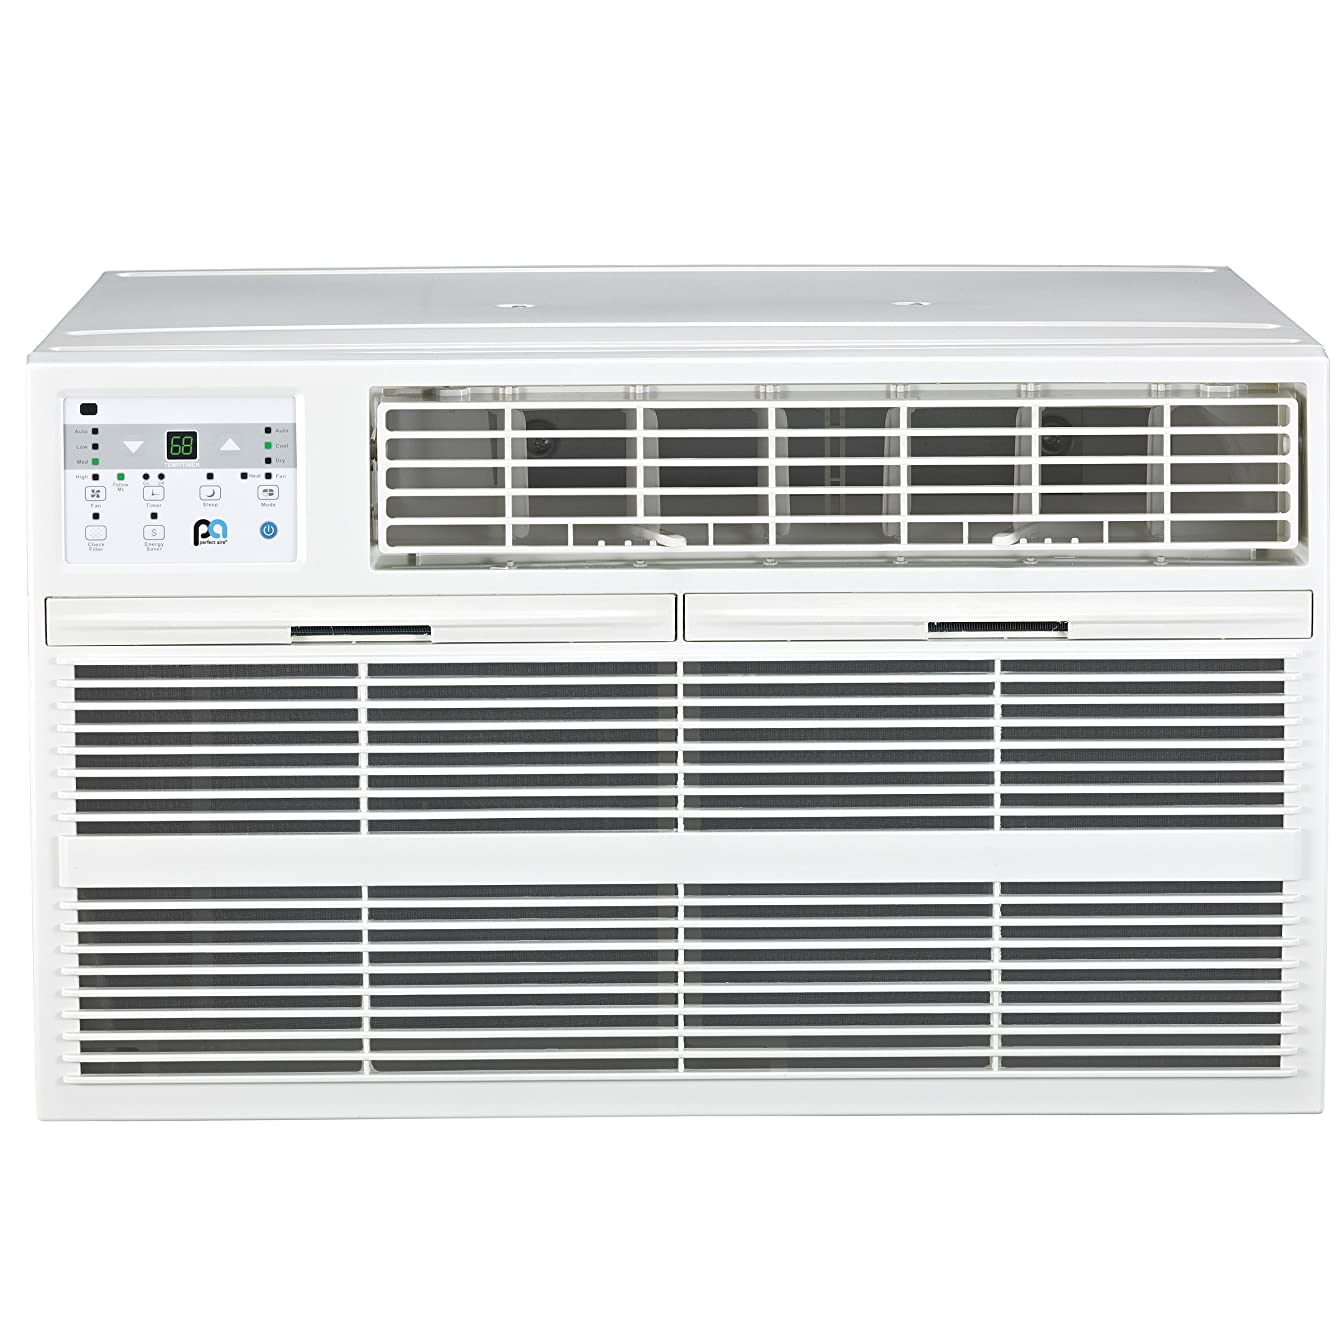 PerfectAire 3PATWH14002 Heat/Cool Air Conditioner with Remote Control, 13,600 BTU, White